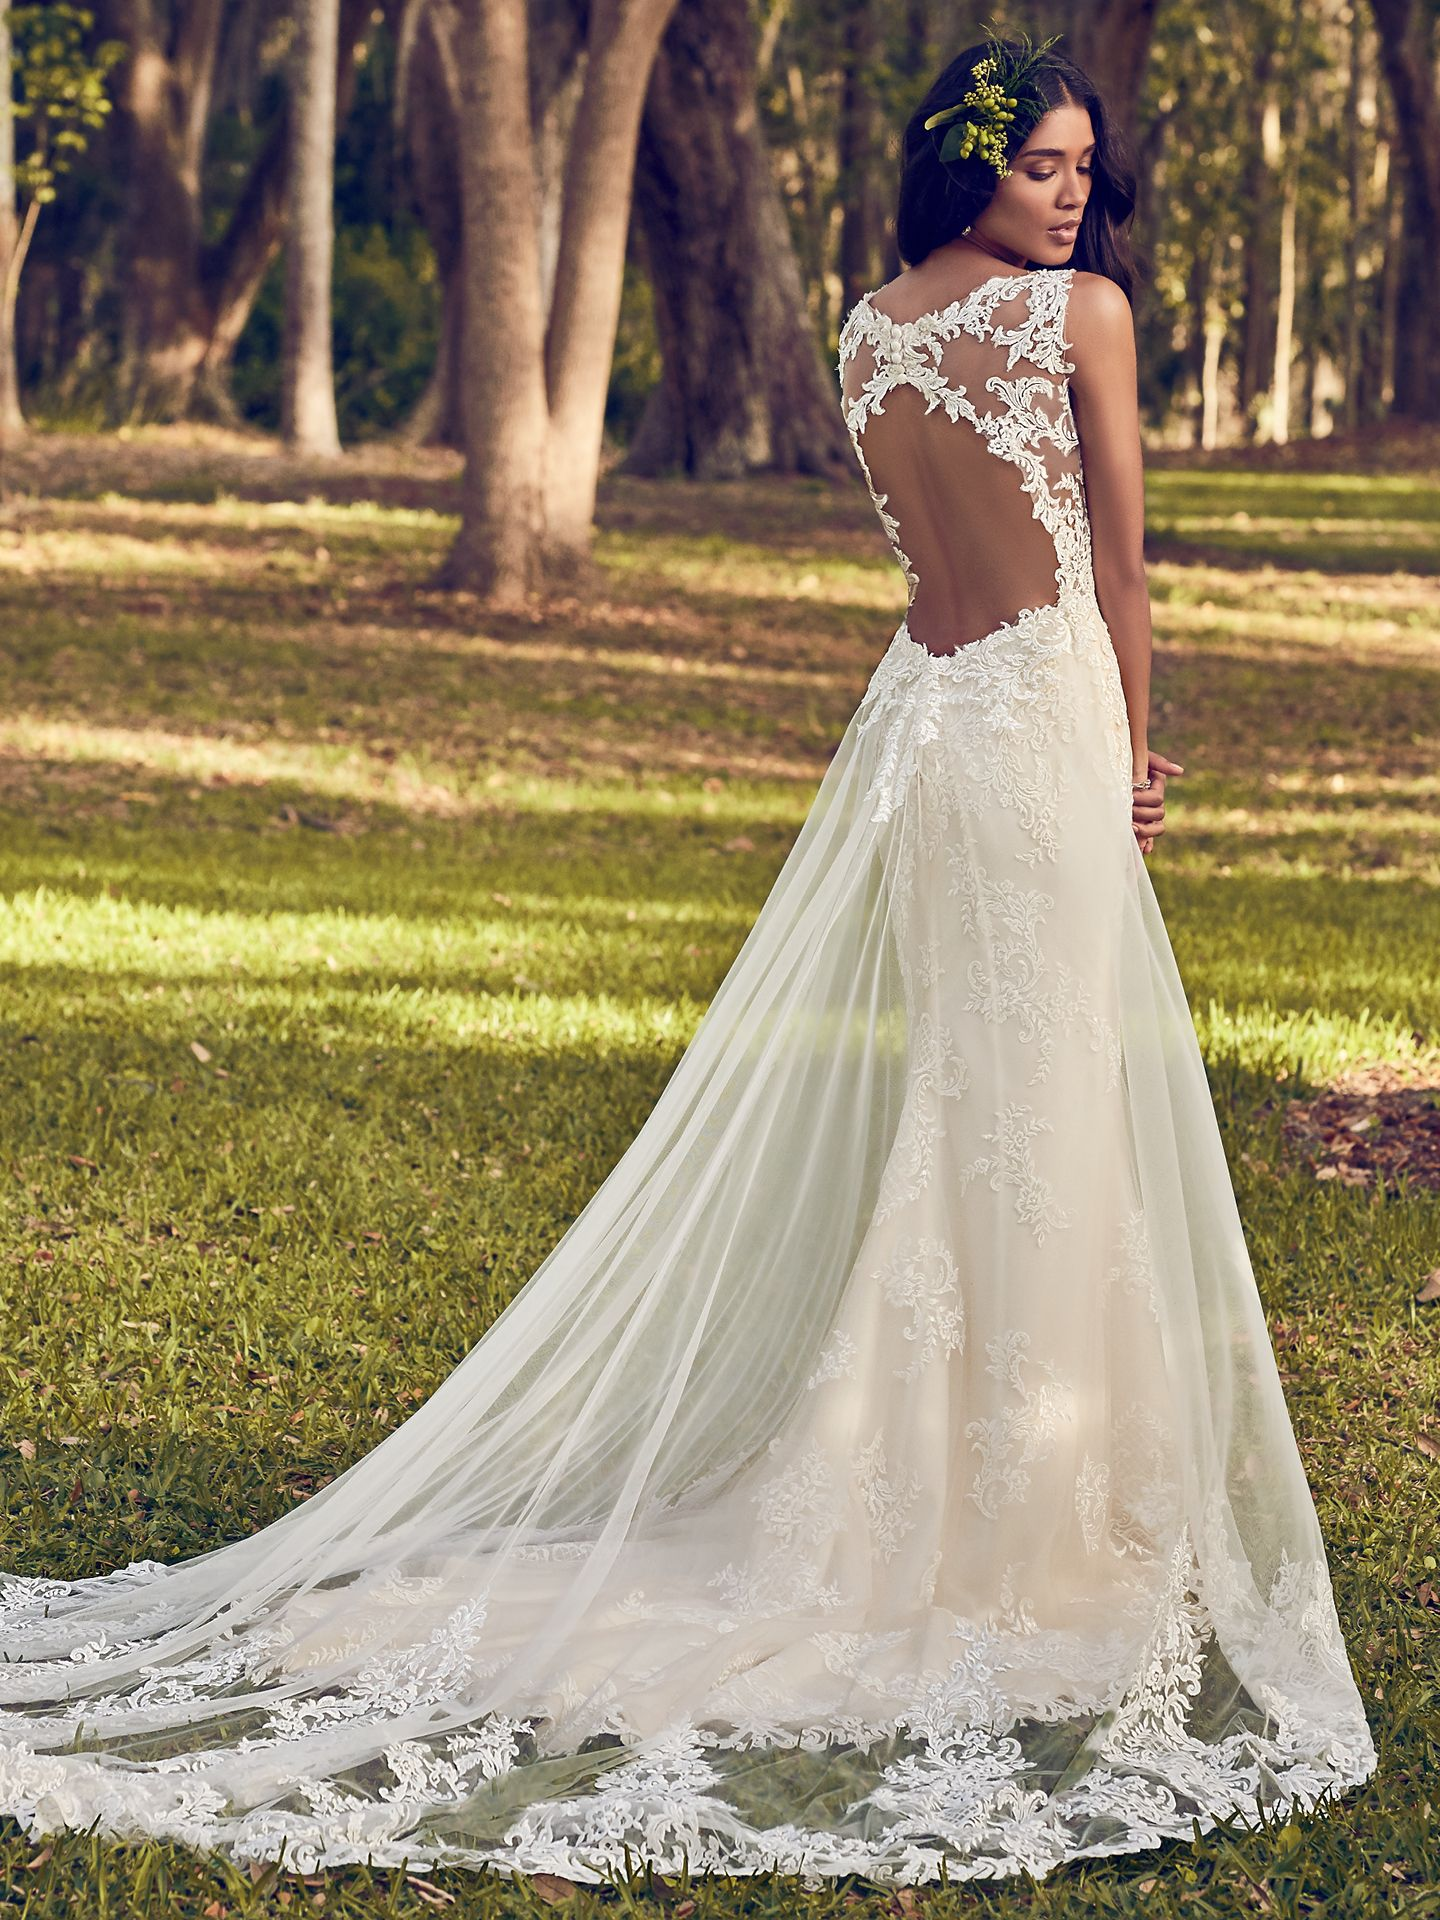 Beaded lace motifs dance over tulle in this sheath wedding dress, accenting the illusion plunging V-neckline, illusion straps, and illusion back with keyhole. Finished with covered buttons over zipper closure. Detachable tulle train accented in lace motifs sold separately. - The Latest Wedding Dress Trends for Engagement Season 2018